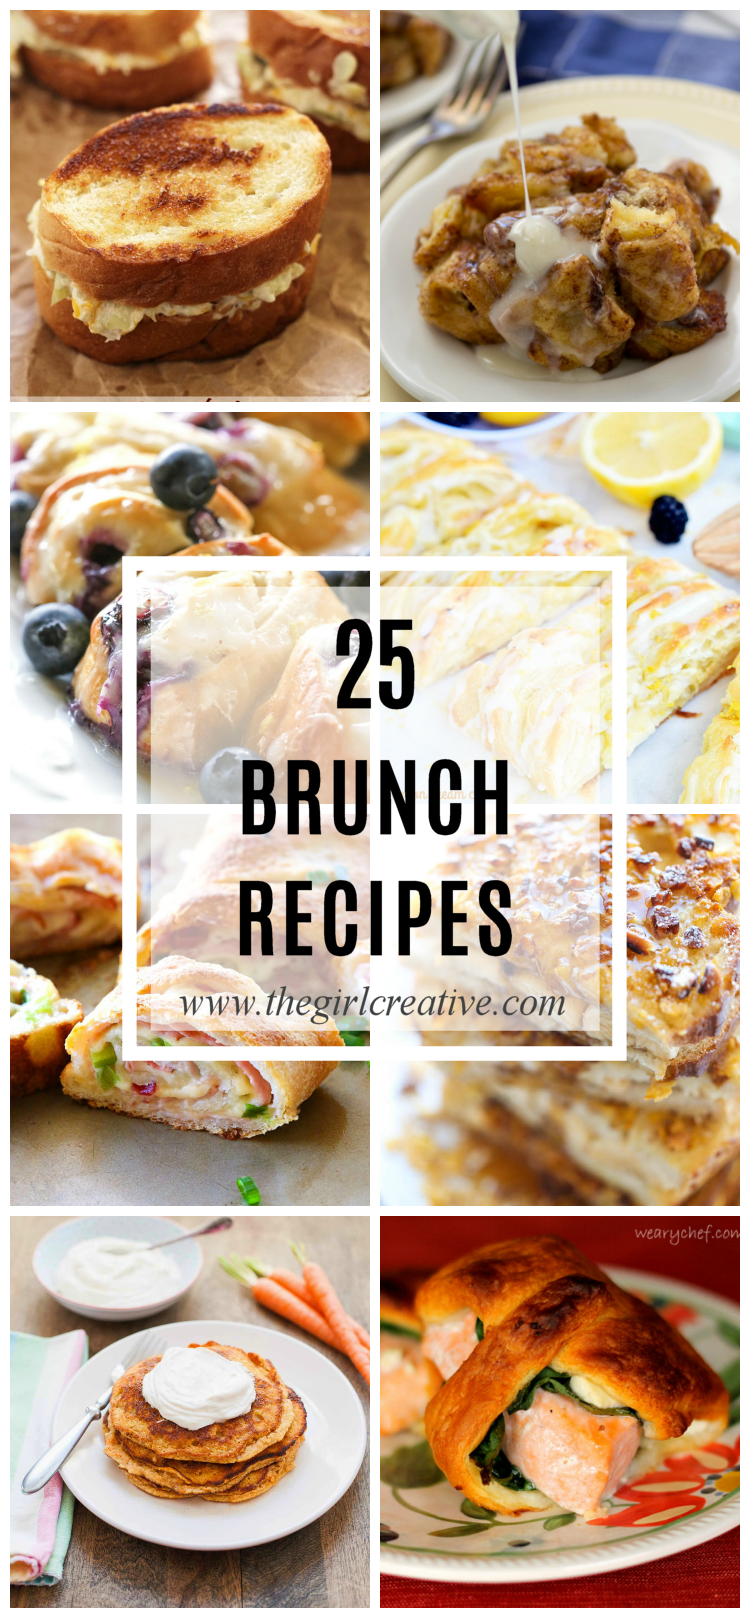 25 Brunch Recipes - Perfect for Mother's Day or any get together where you want to keep the menu light. Muffins, french toast, wraps, sliders, bread, eggs - lots of inspiration.